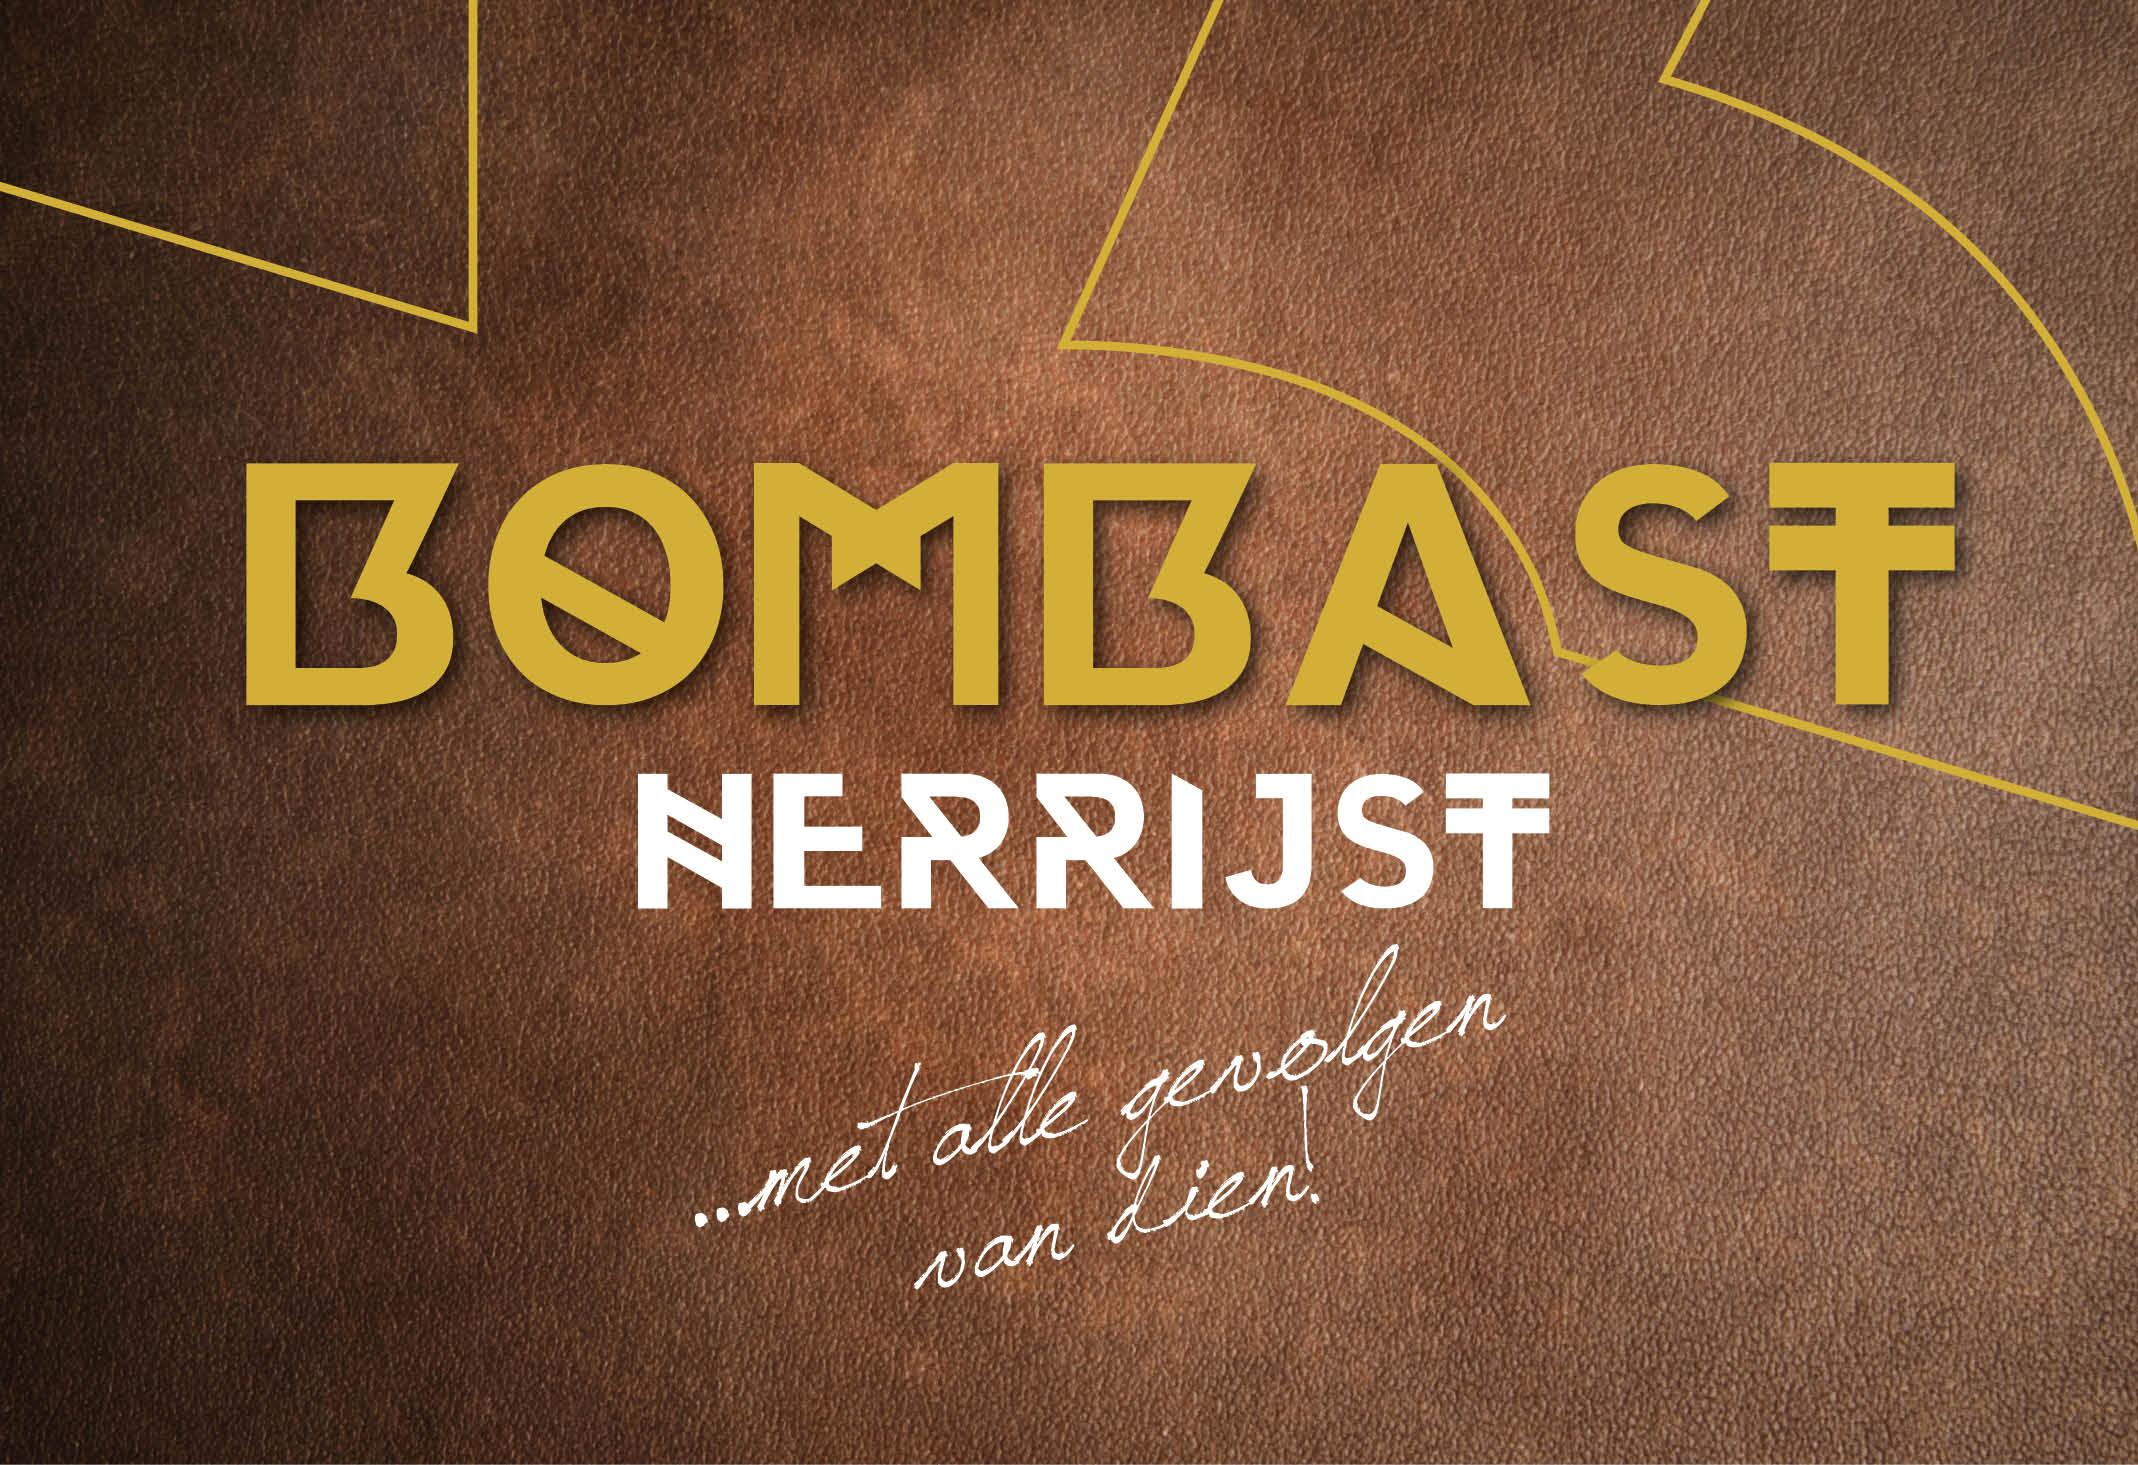 [VIDEO] Bombast Herrijst!